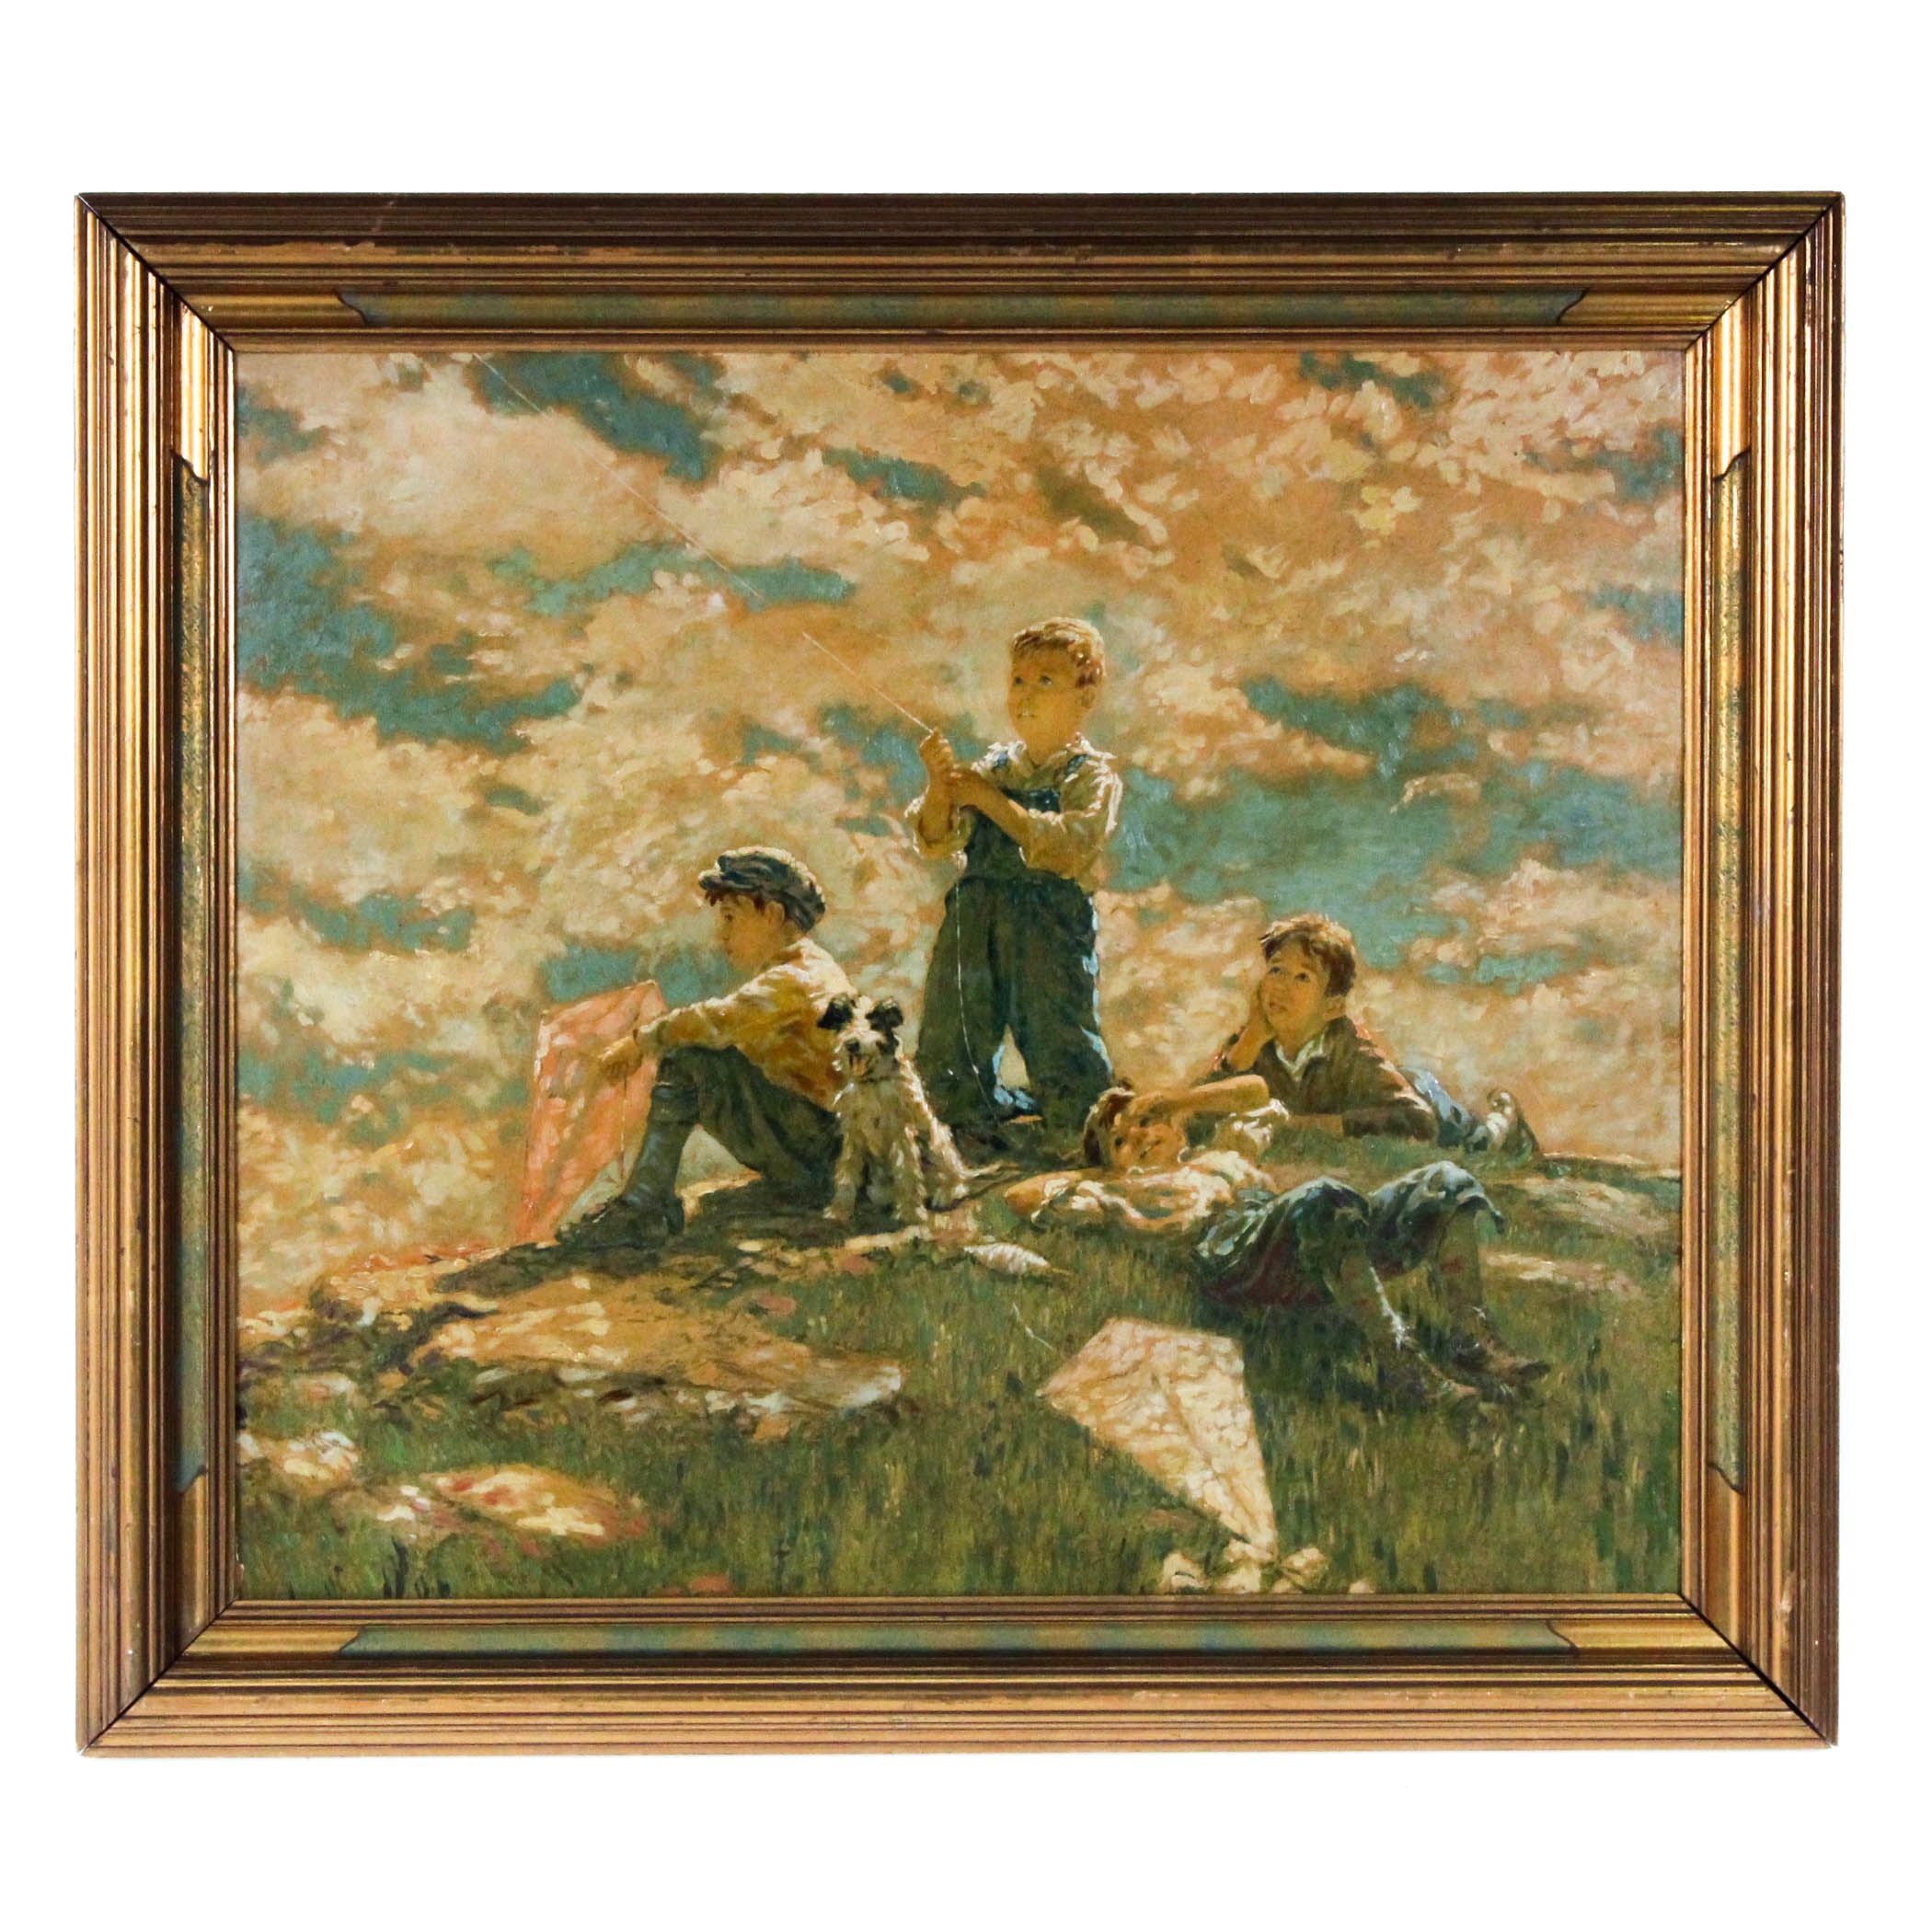 Vintage Hand-Embellished Offset Lithograph of Boys with Kites